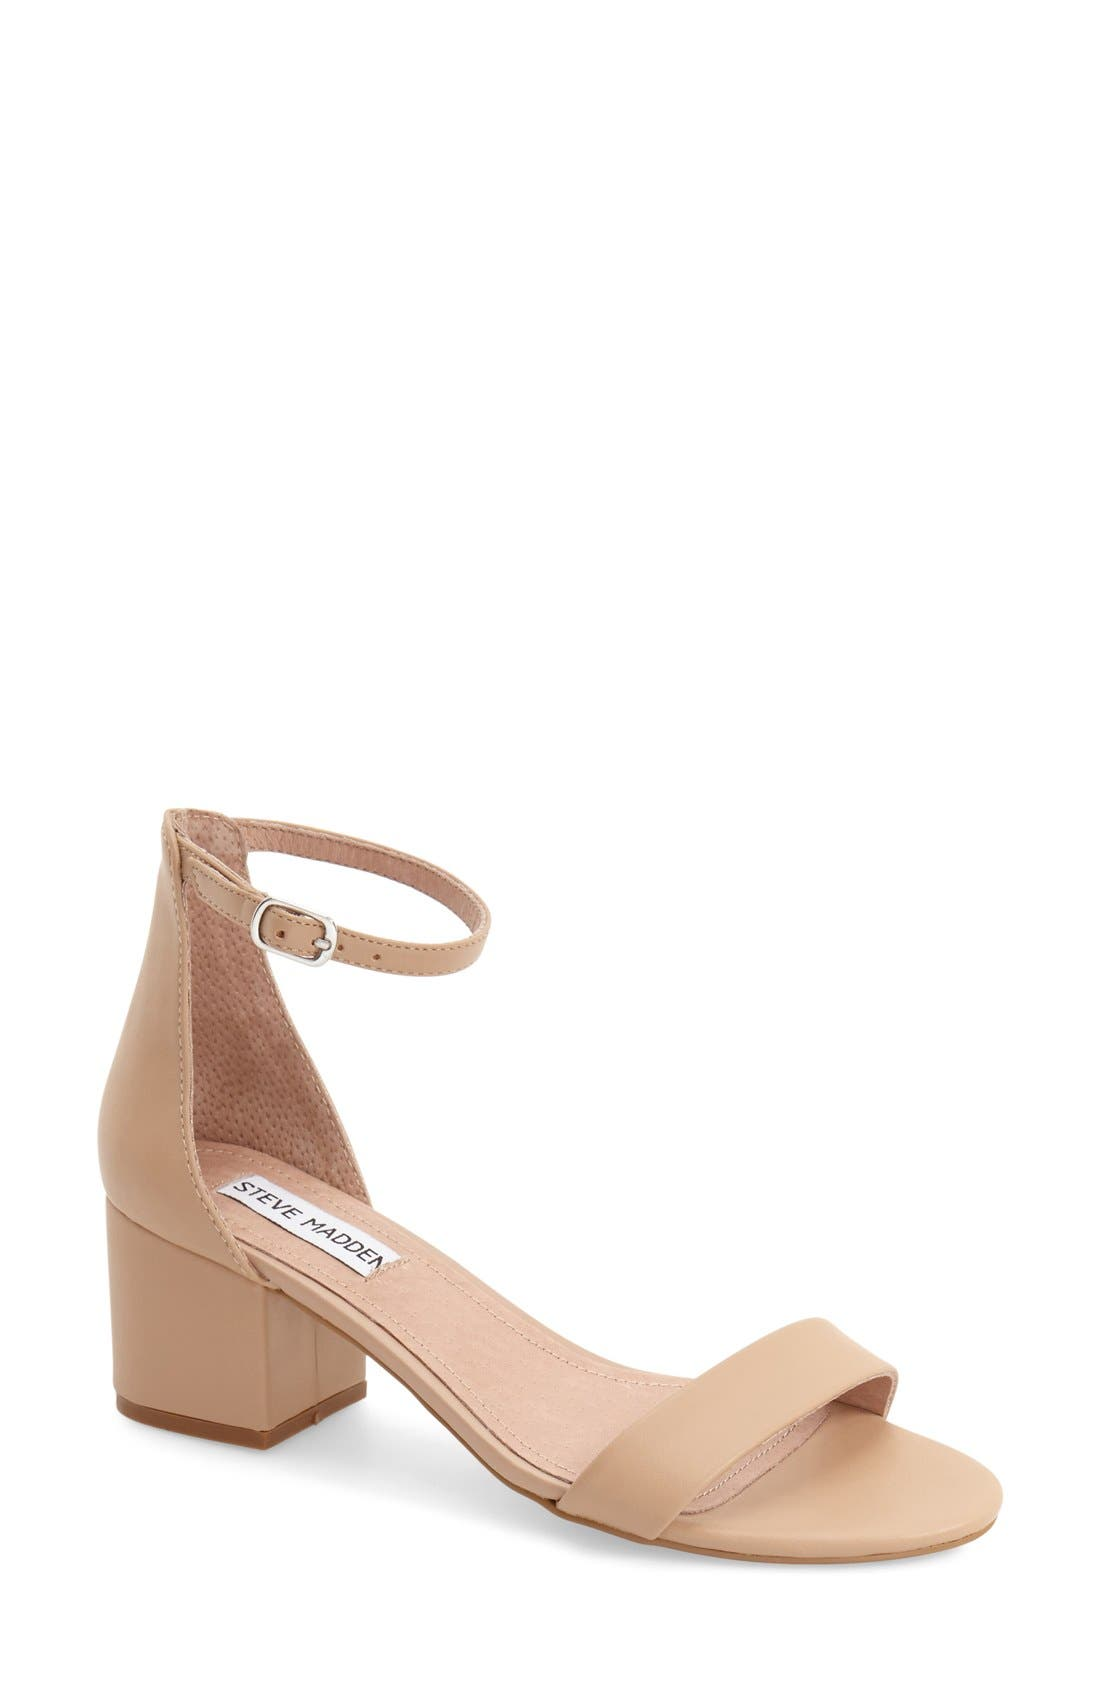 ,                             Irenee Ankle Strap Sandal,                             Main thumbnail 166, color,                             275